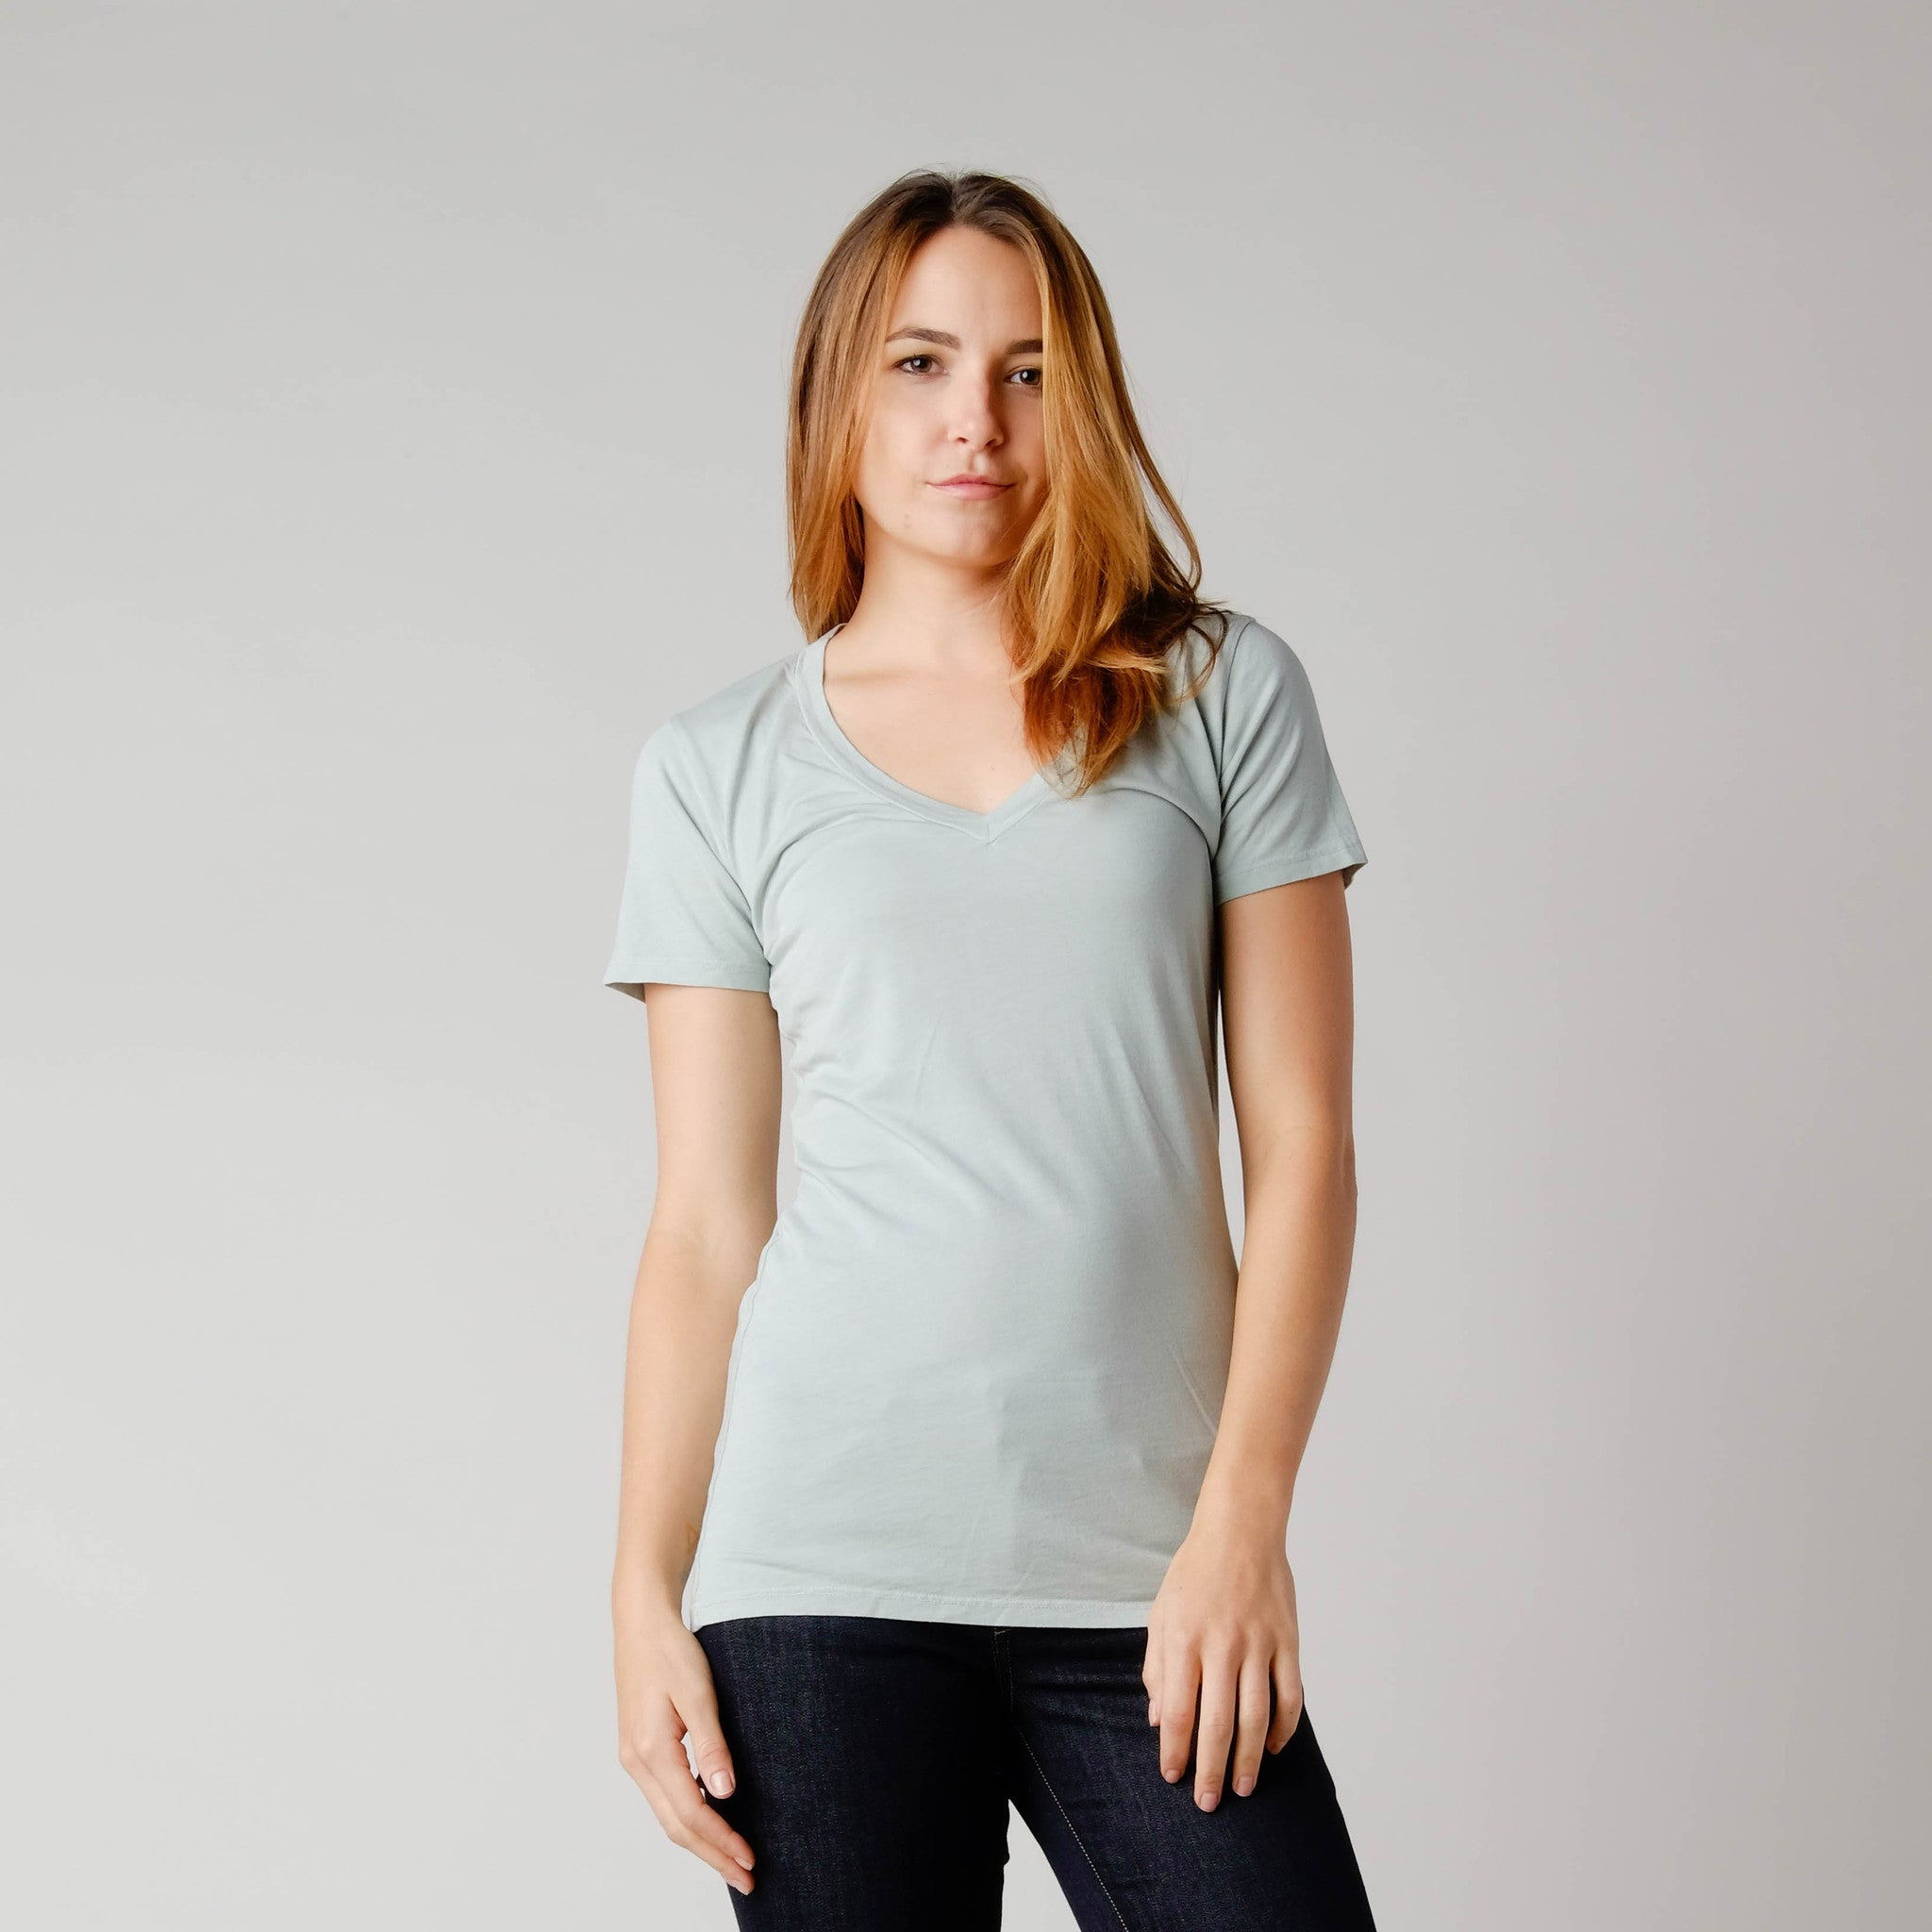 BDC Hemp/Organic Cotton Vee Neck Tee Holy Basil